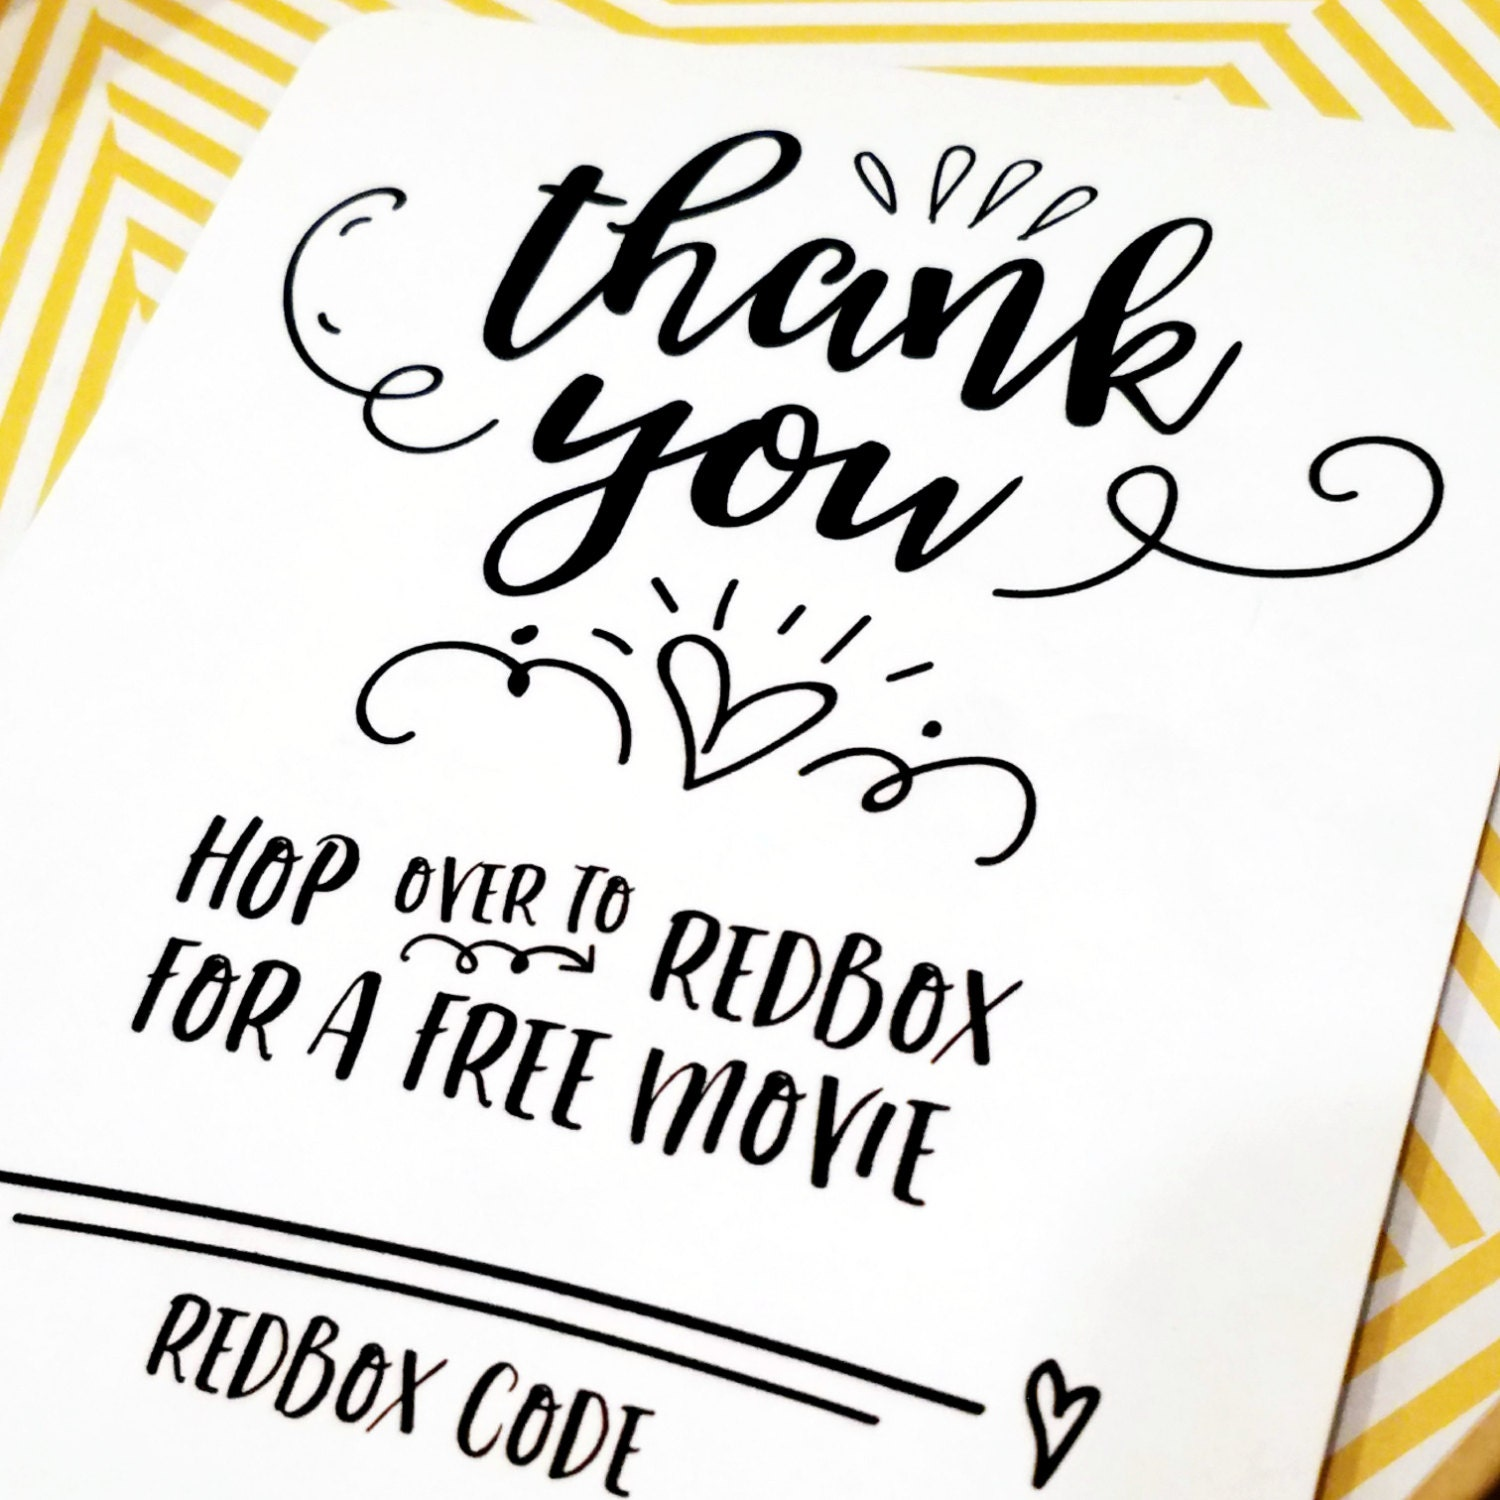 It's just a graphic of Légend Redbox Printable Gift Certificate